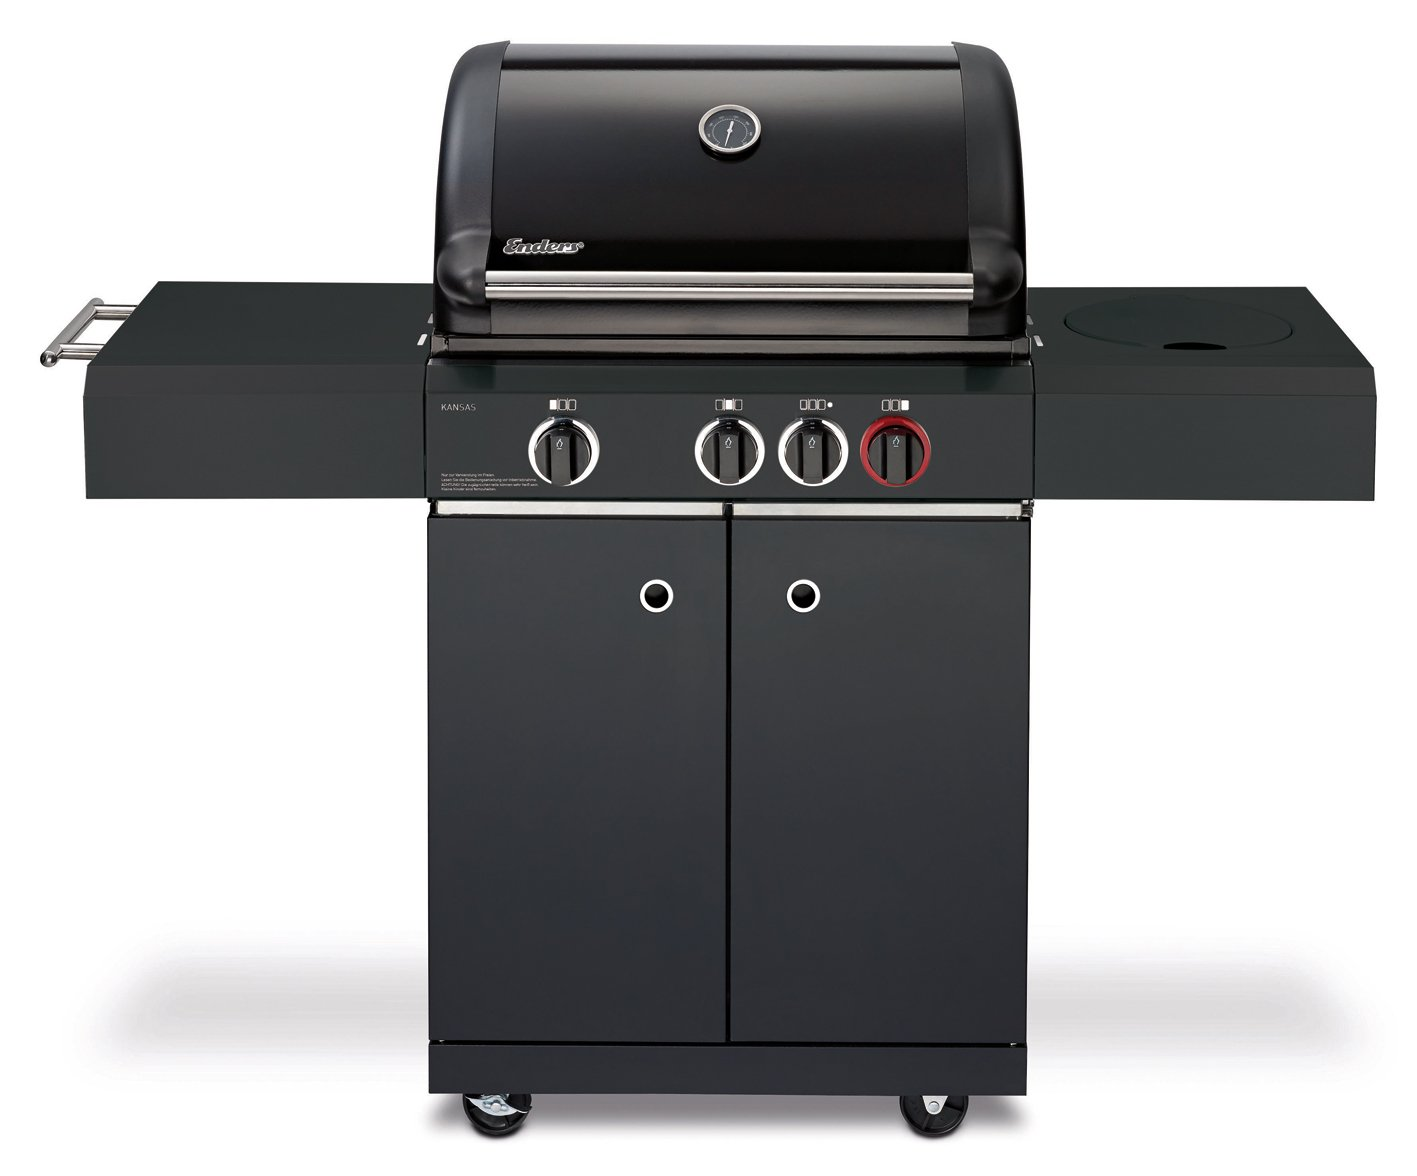 Enders Gasgrill Simple Clean : Enders gasgrill kansas pro sik profi turbo« bxtxh